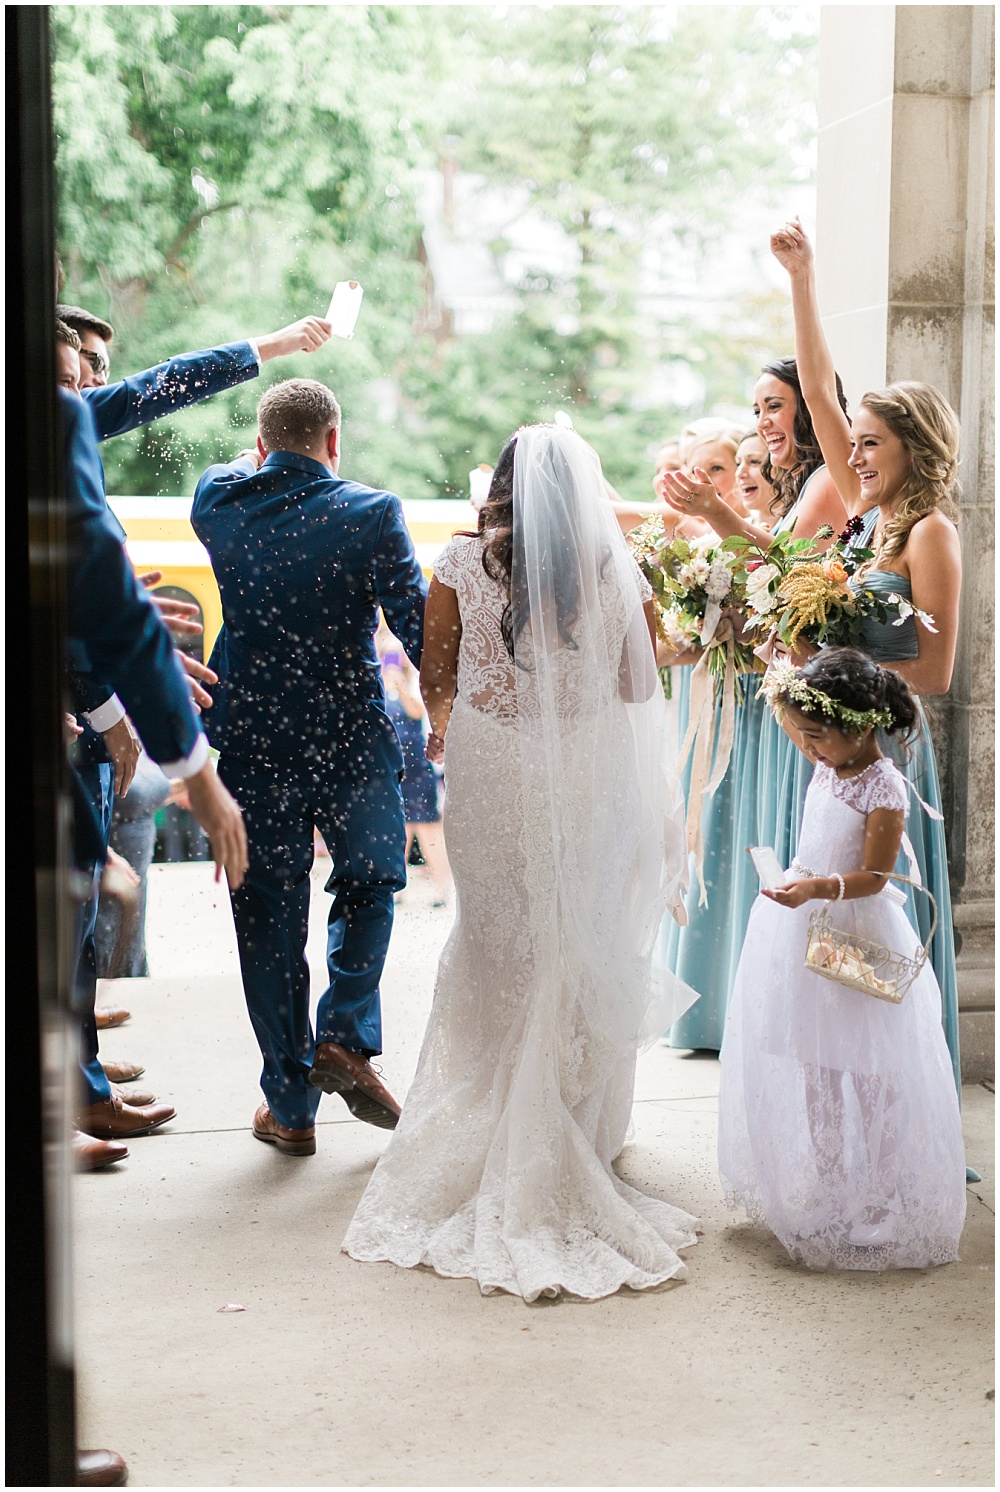 7 Waysto Make Your Wedding Interactive | interactive wedding; wedding ideas; church exit; confetti toss; wedding exit; formal exit; birdseed toss; lavender toss